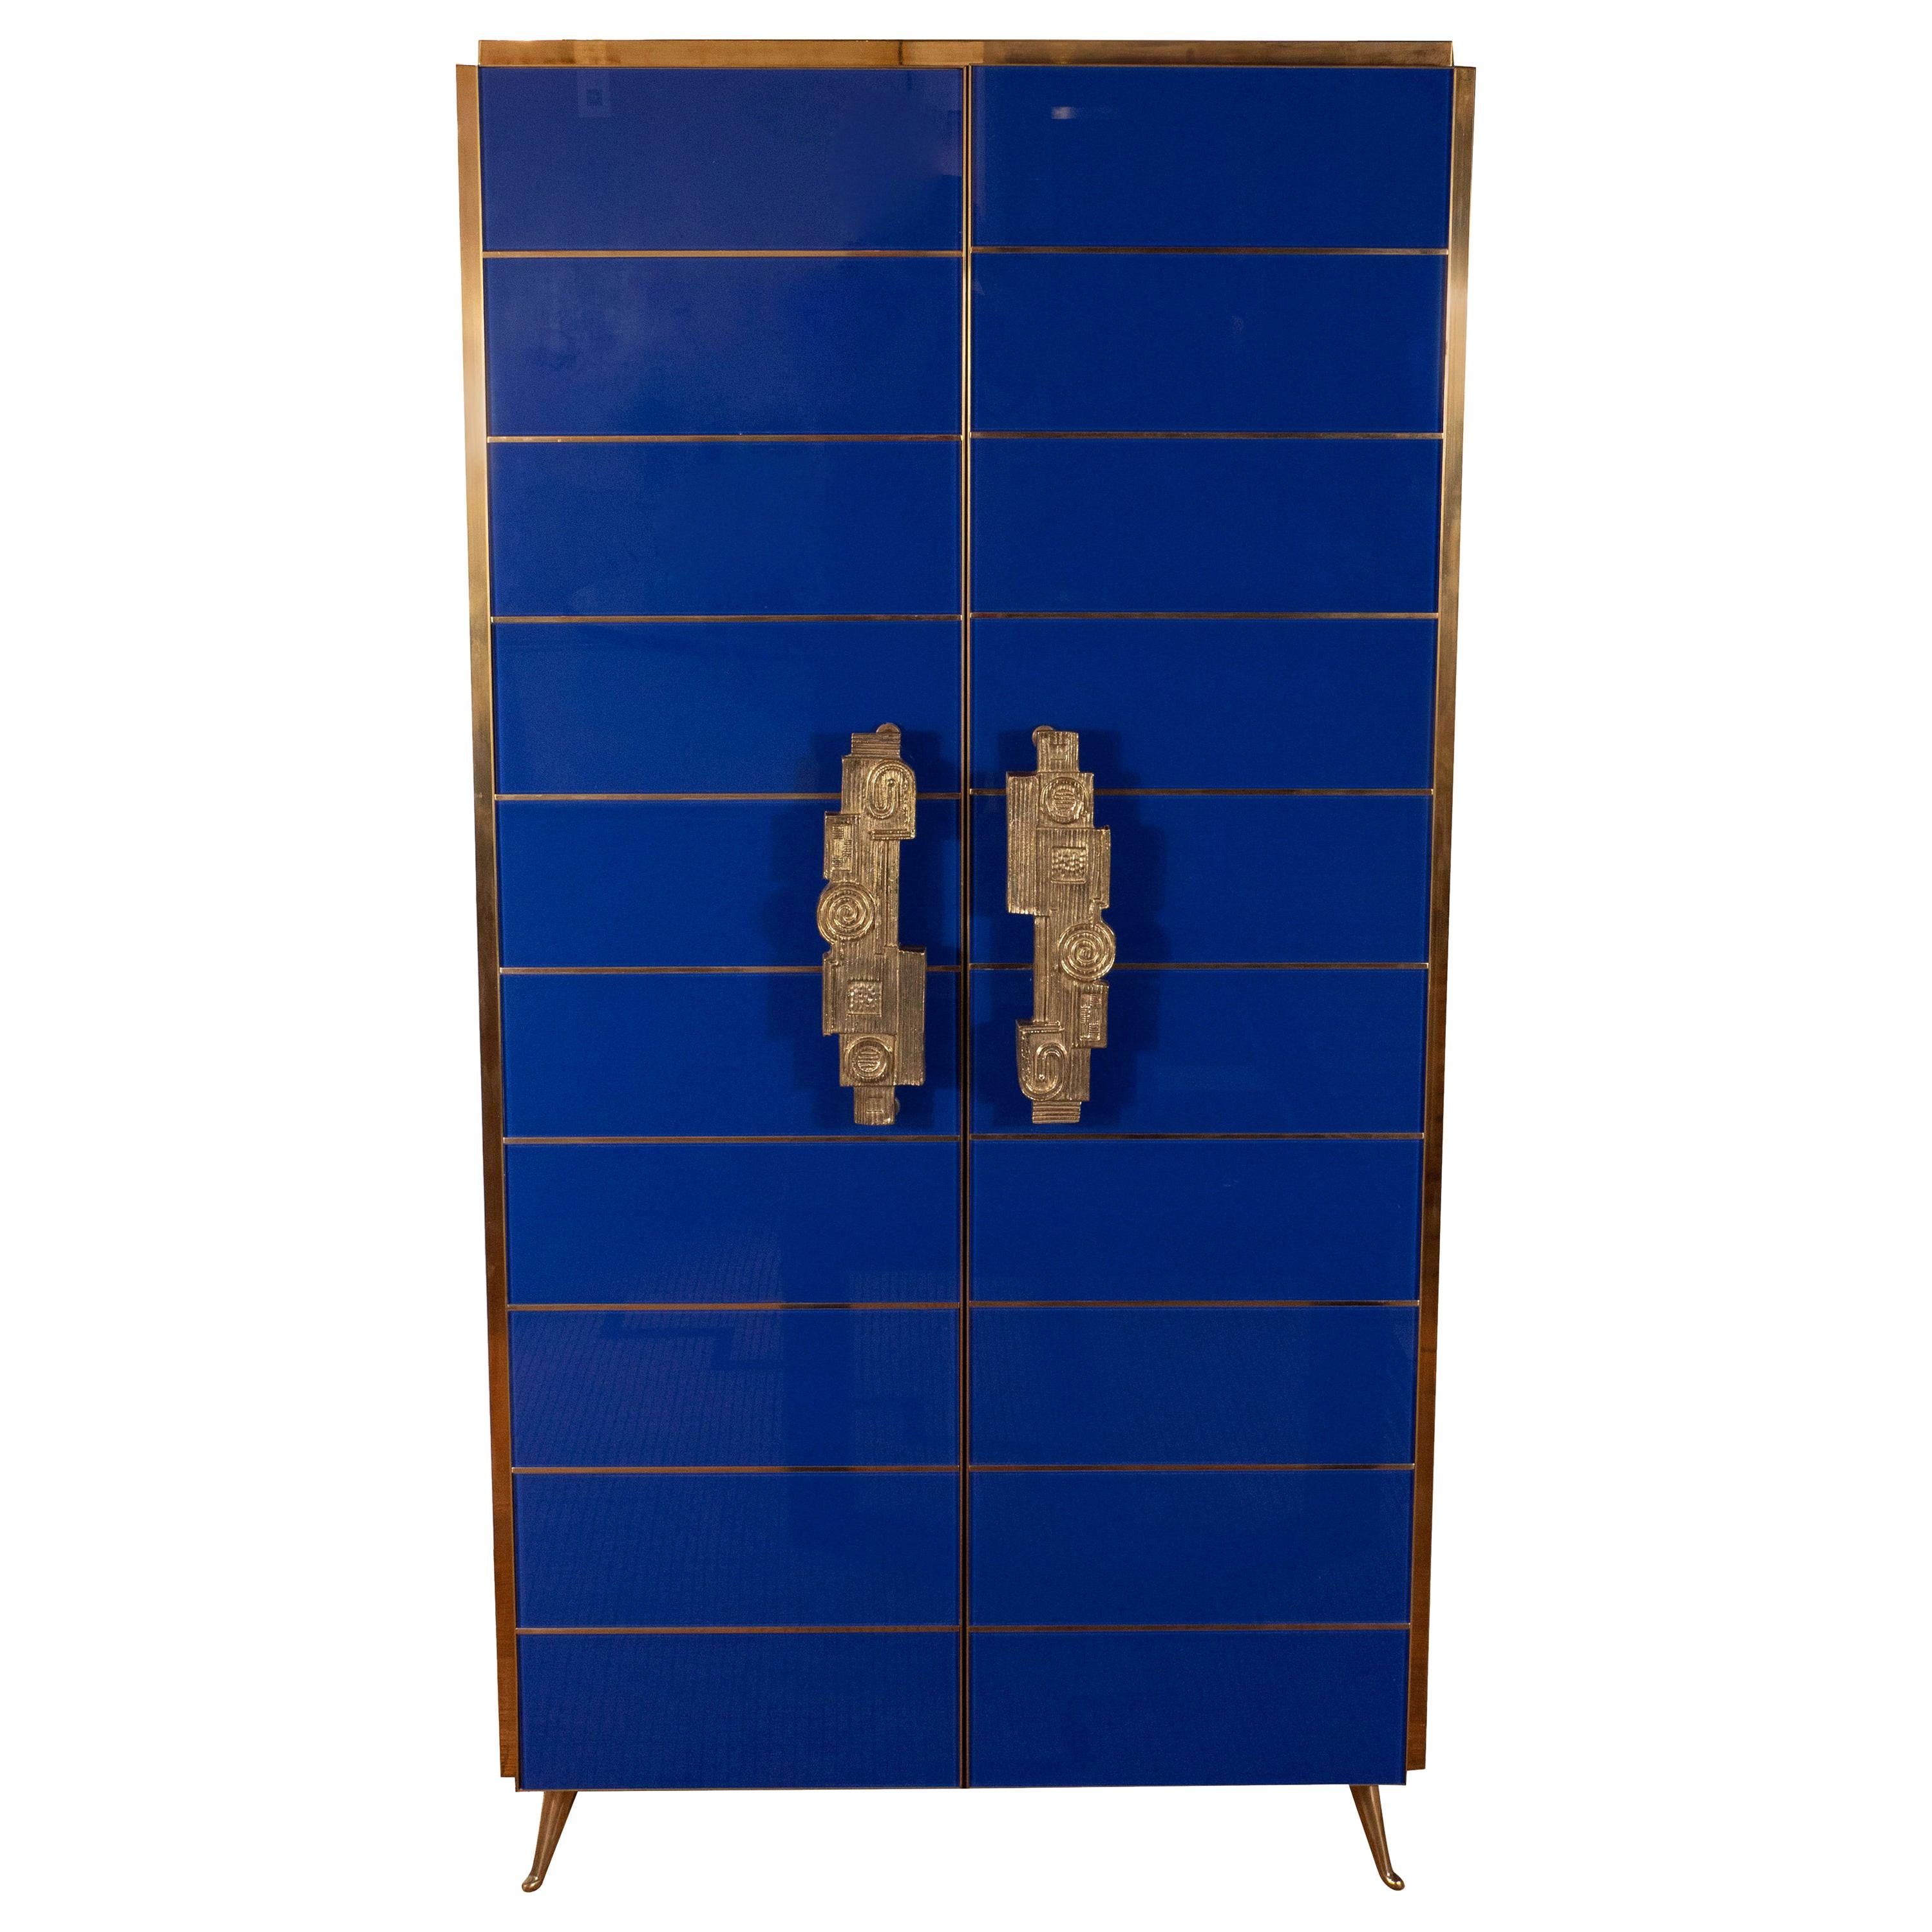 Tall 2-Door Cobalt Blue Glass with Brass Inlays Cabinet or Dry Bar, Italy